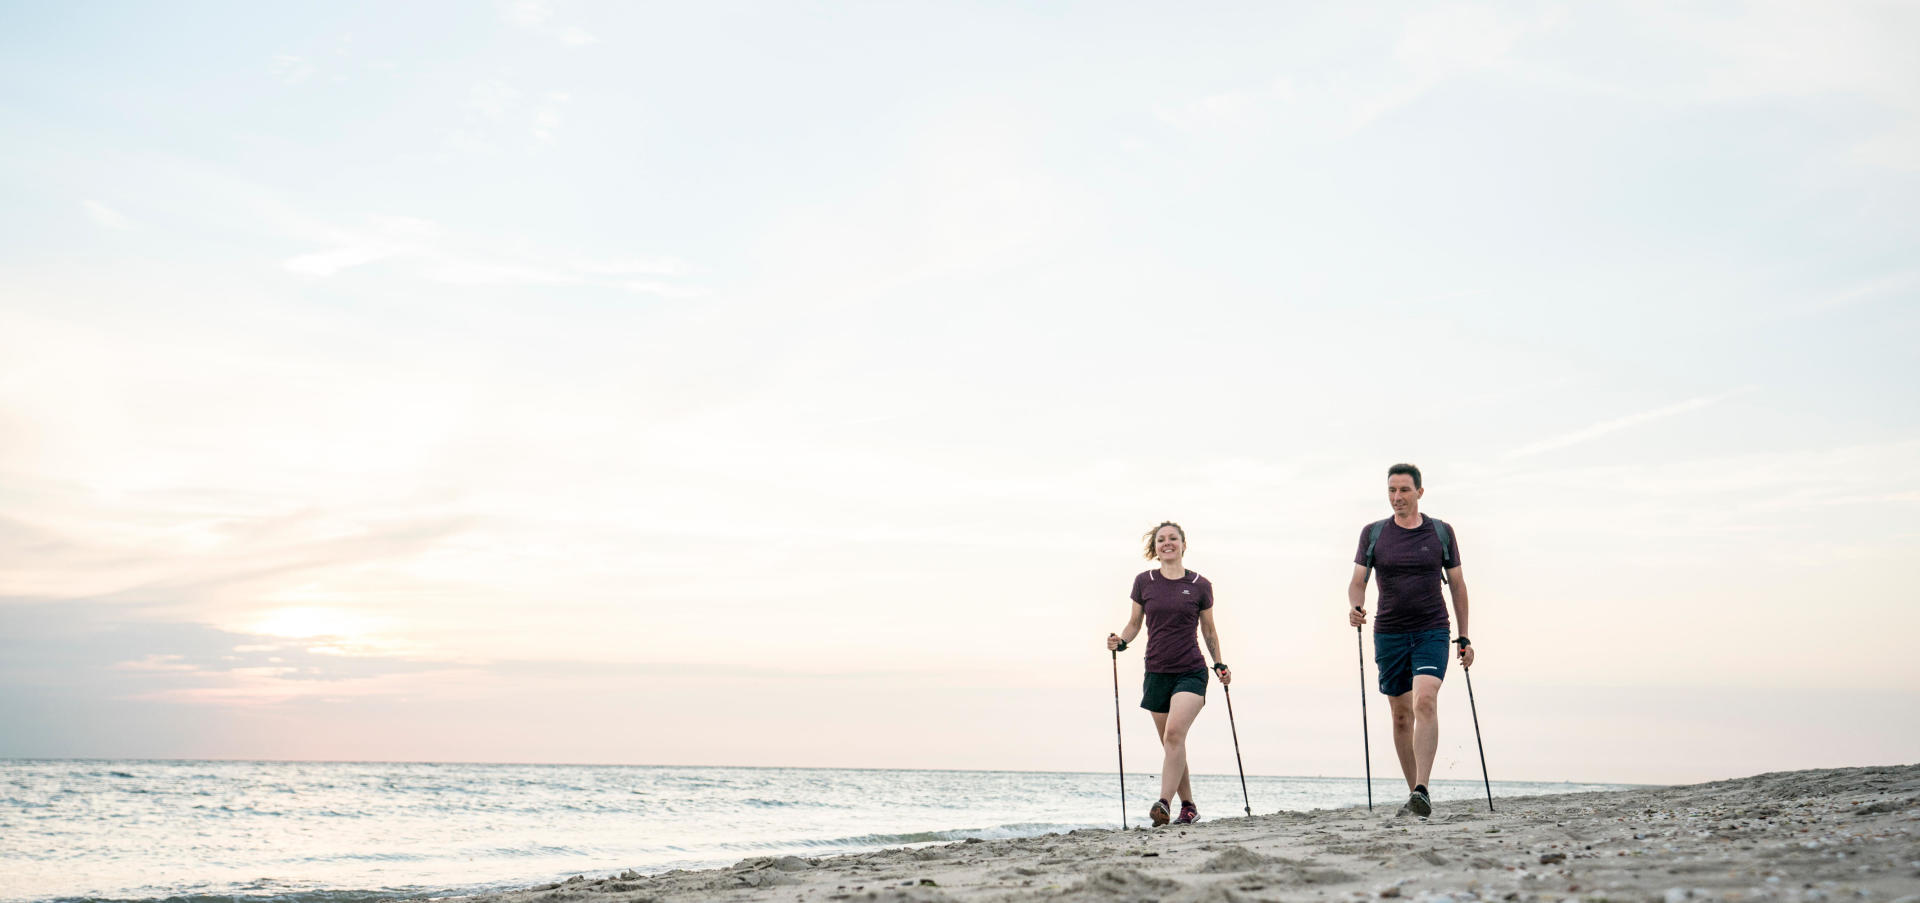 Nordic-walking-and-travelling